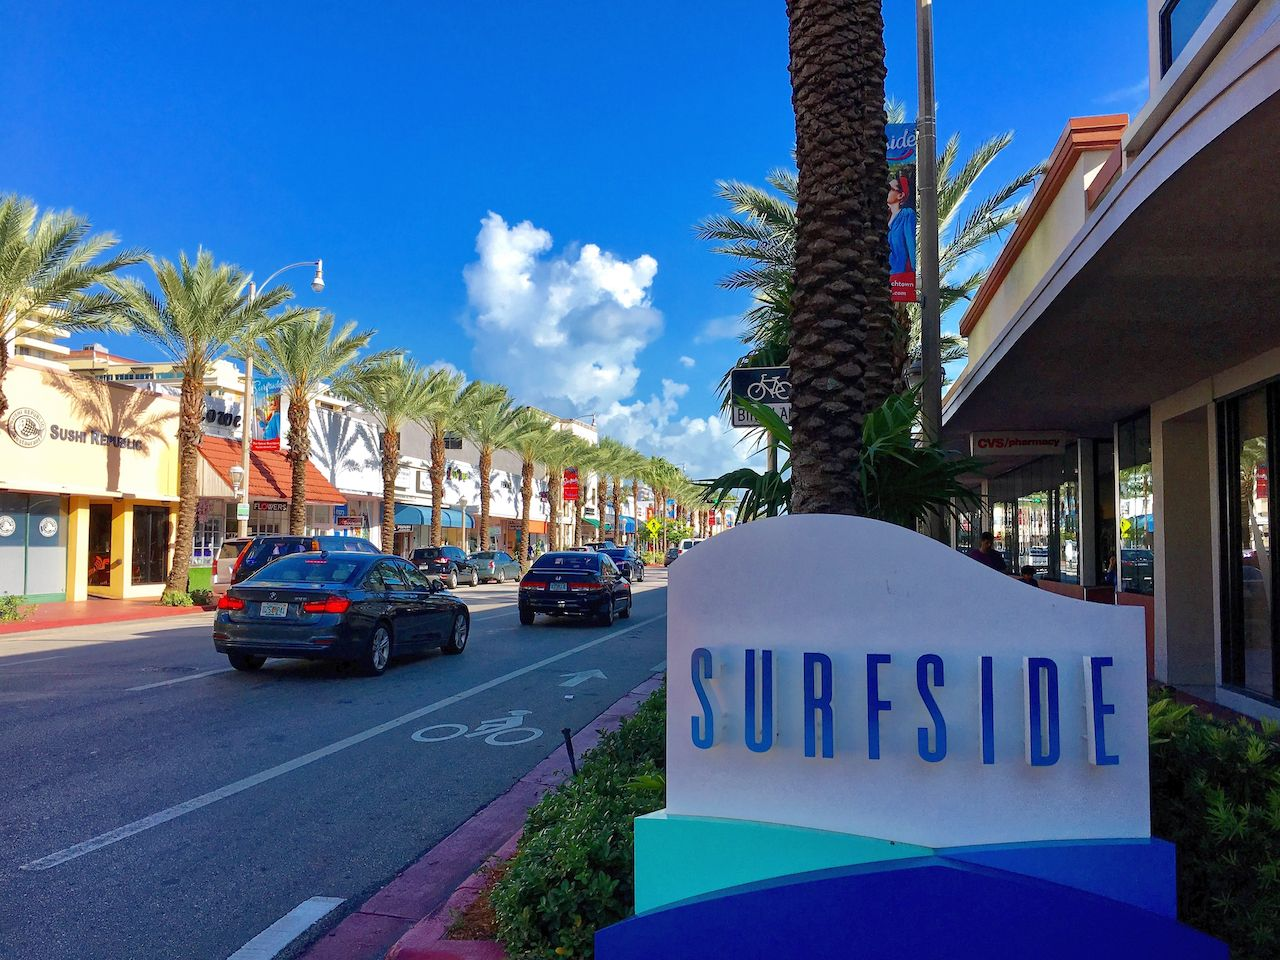 Surfside District in Miami Beach, Florida